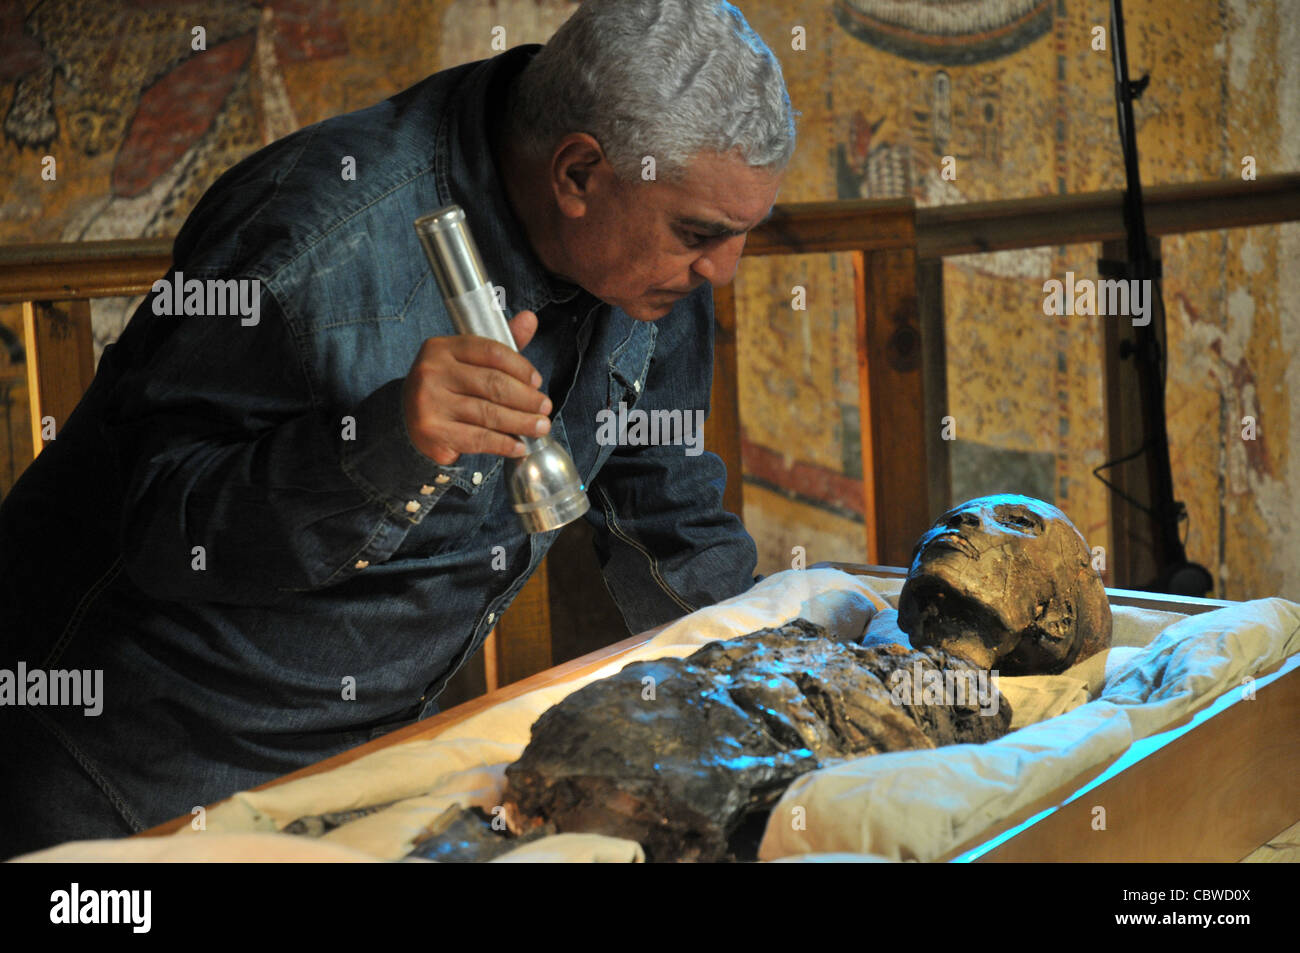 Zahi Hawass examining King Tut mummy inside the tomb of King Tut in the Valley of the Kings in Luxor, Egypt - Stock Image